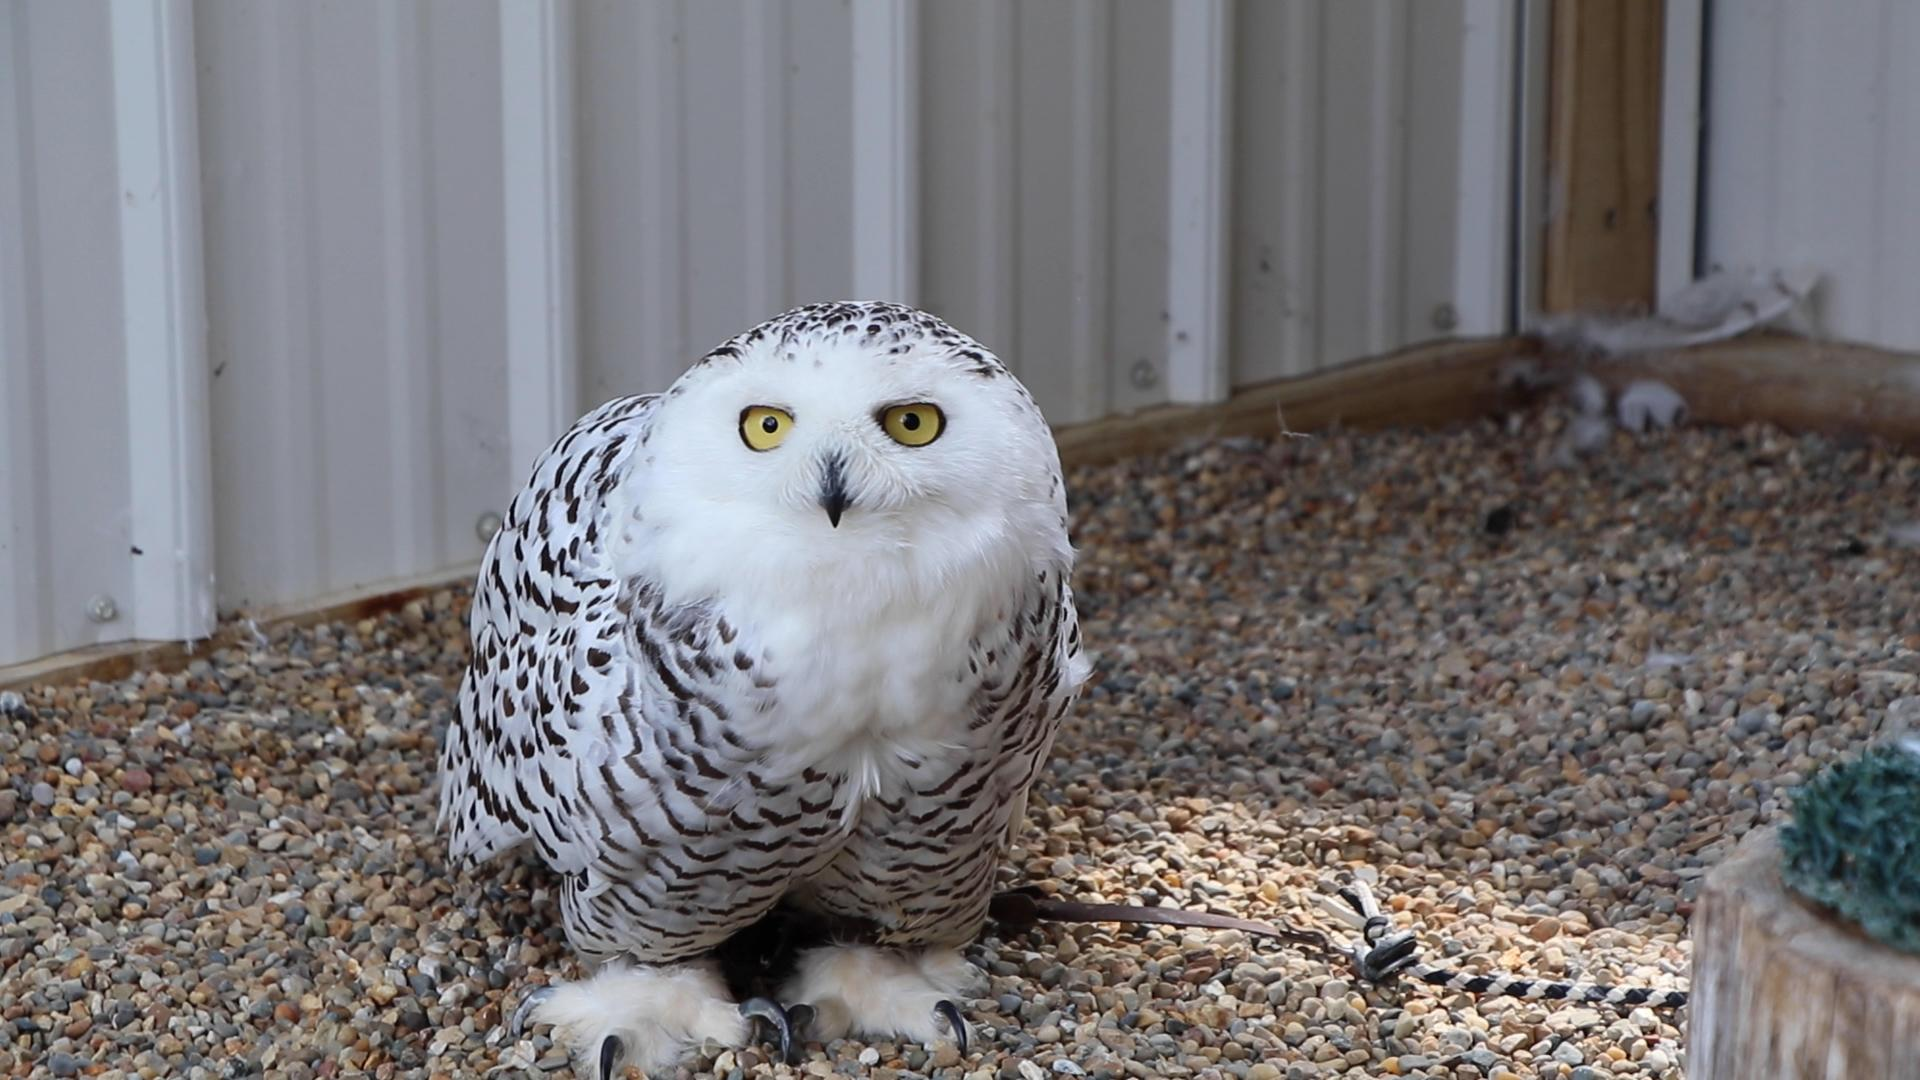 This snowy owl was bred in captivity in Canada and brought to the Illinois Raptor Center as a permanent resident. Unlike most owls, which are nocturnal, the snowy owl is active during the day. (Evan Garcia / WTTW News)